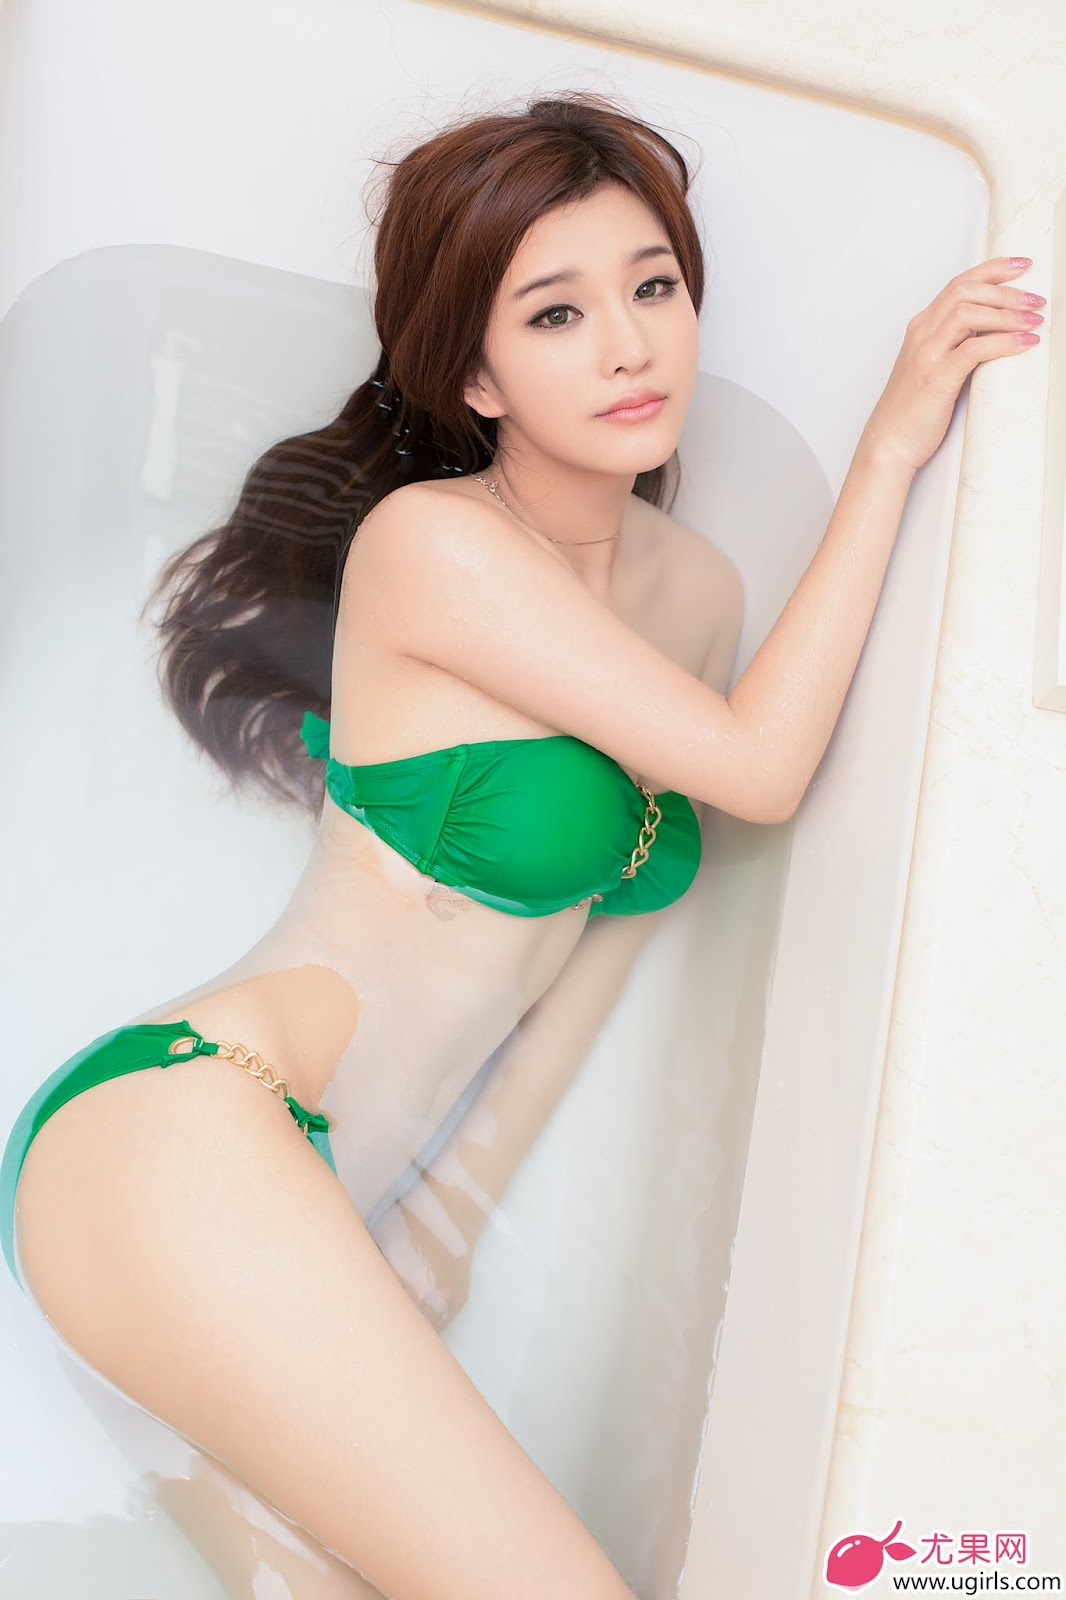 EZ0A0792 - Ugirls No.016 Model 纯小希 (Chun Xiao Xi)